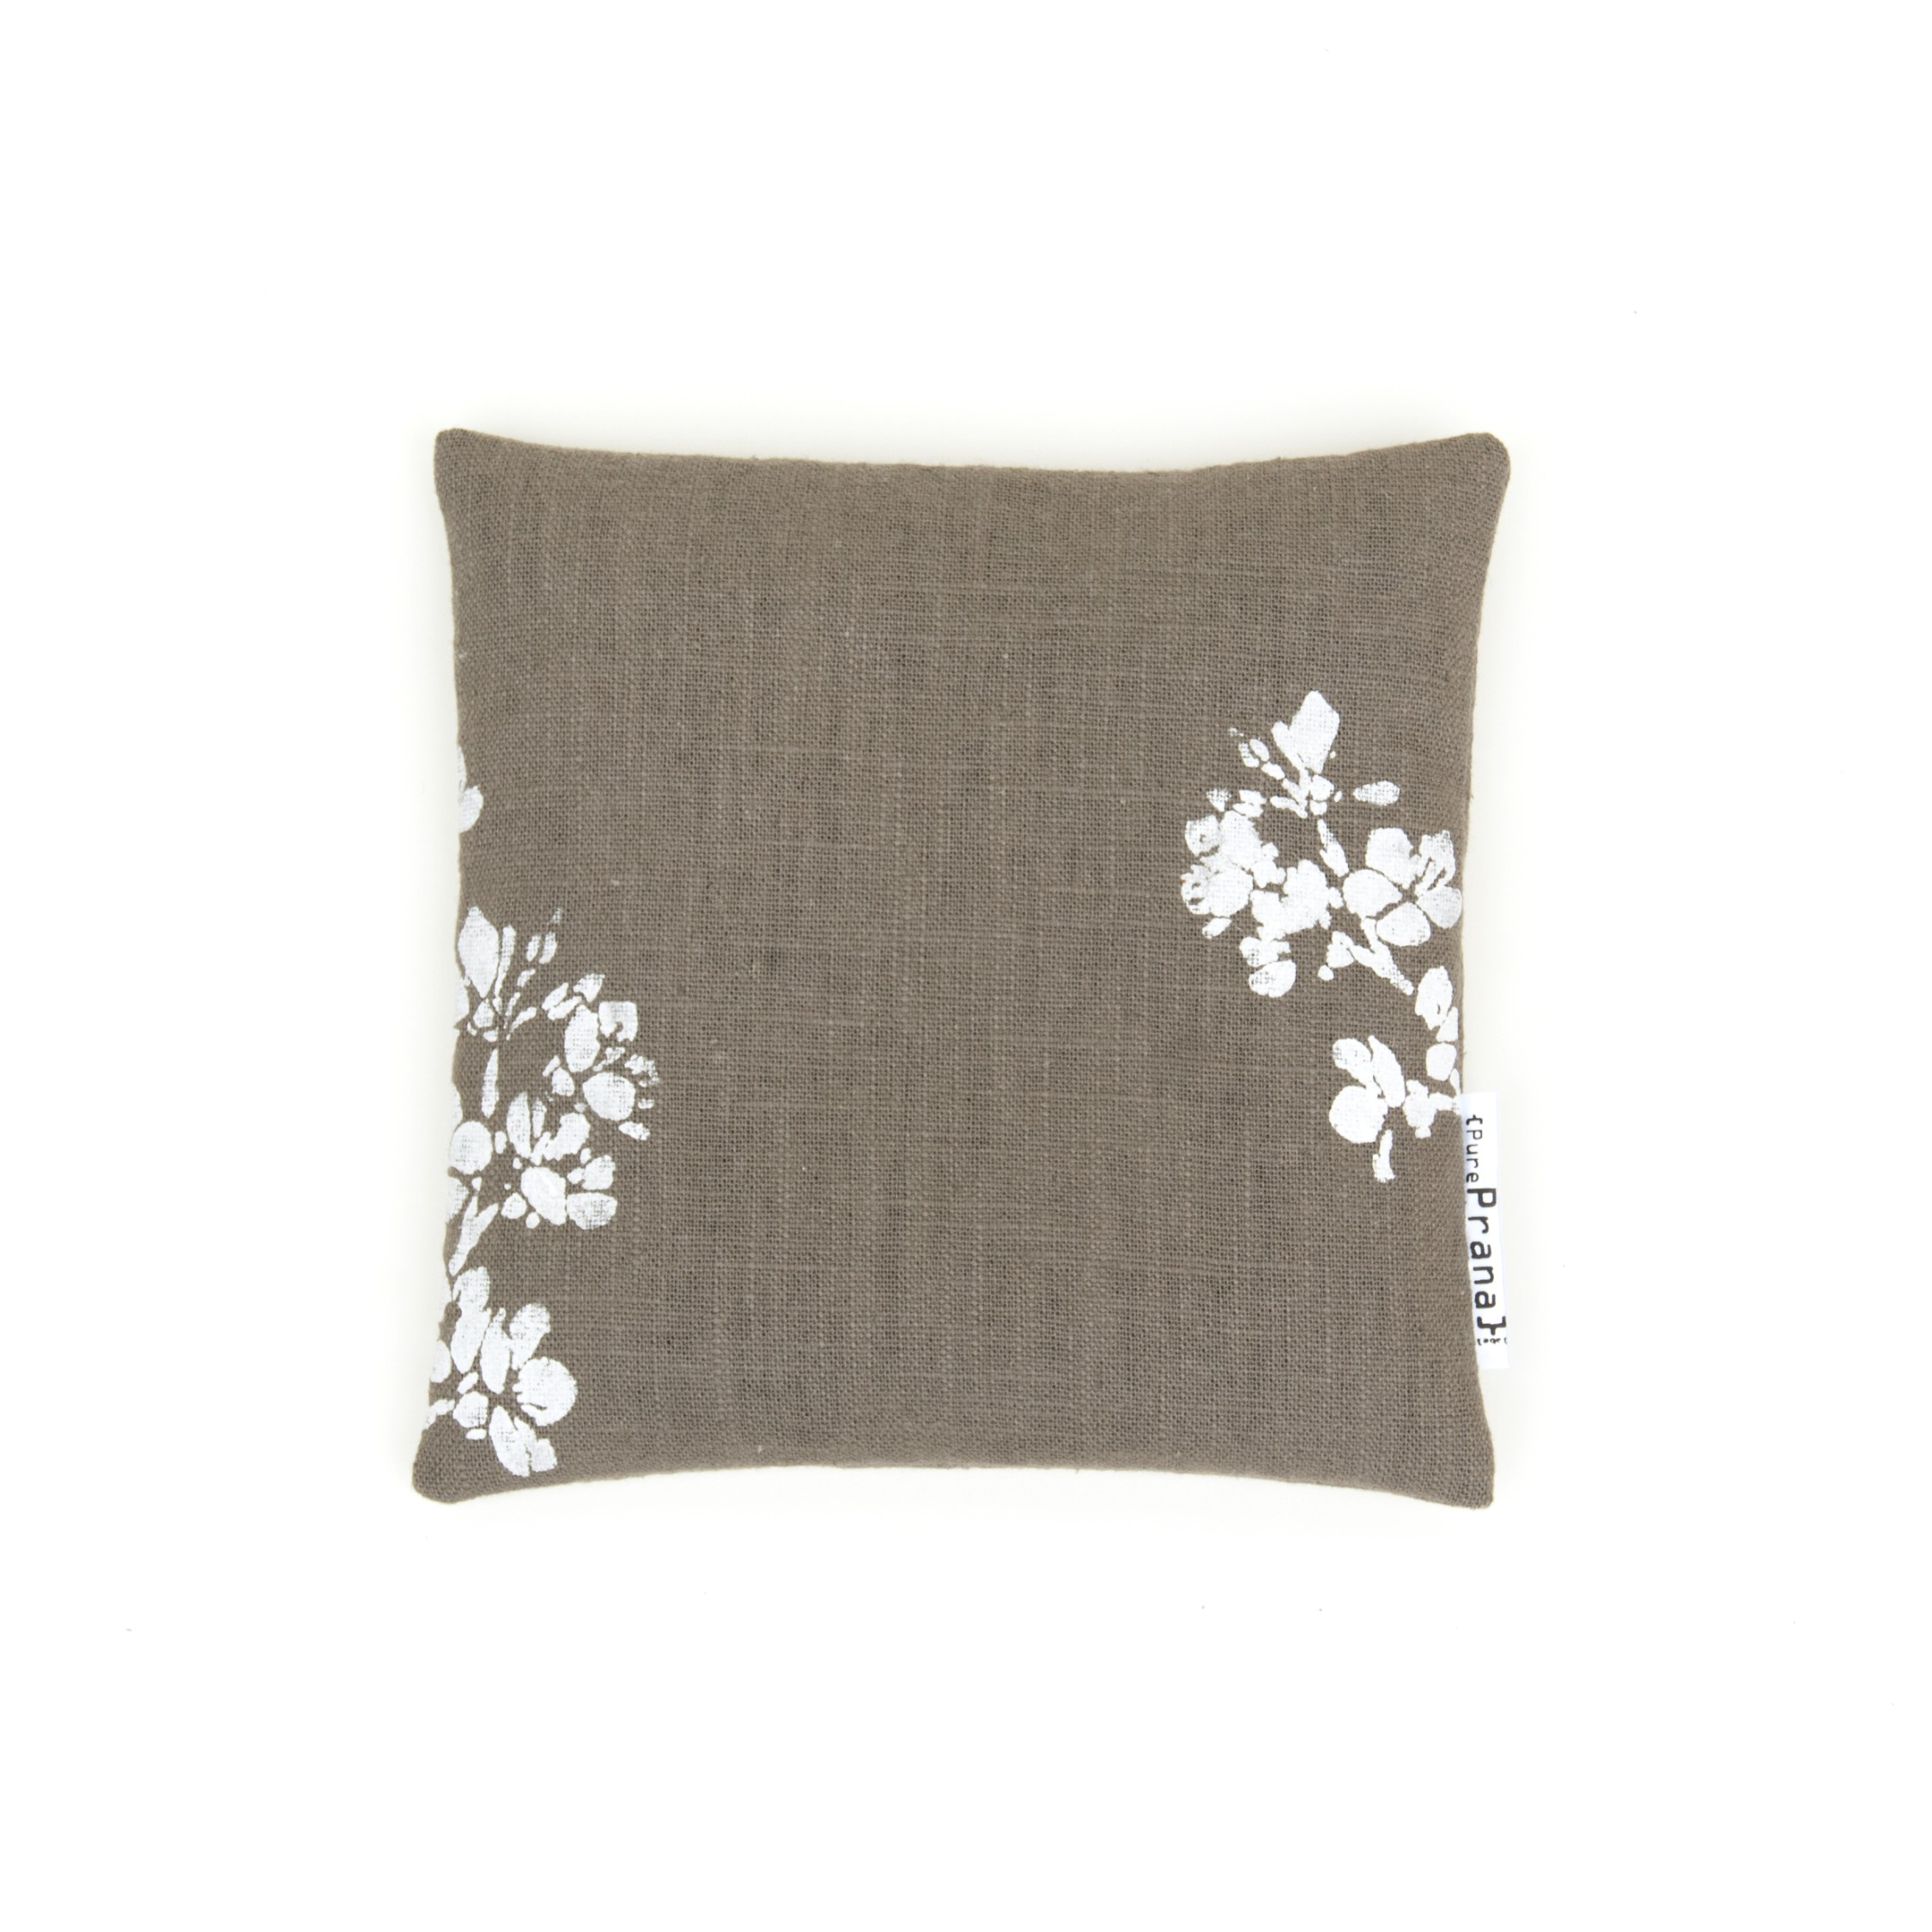 Top view of your singing bowl cushion 'Cherry blossom'in olive green